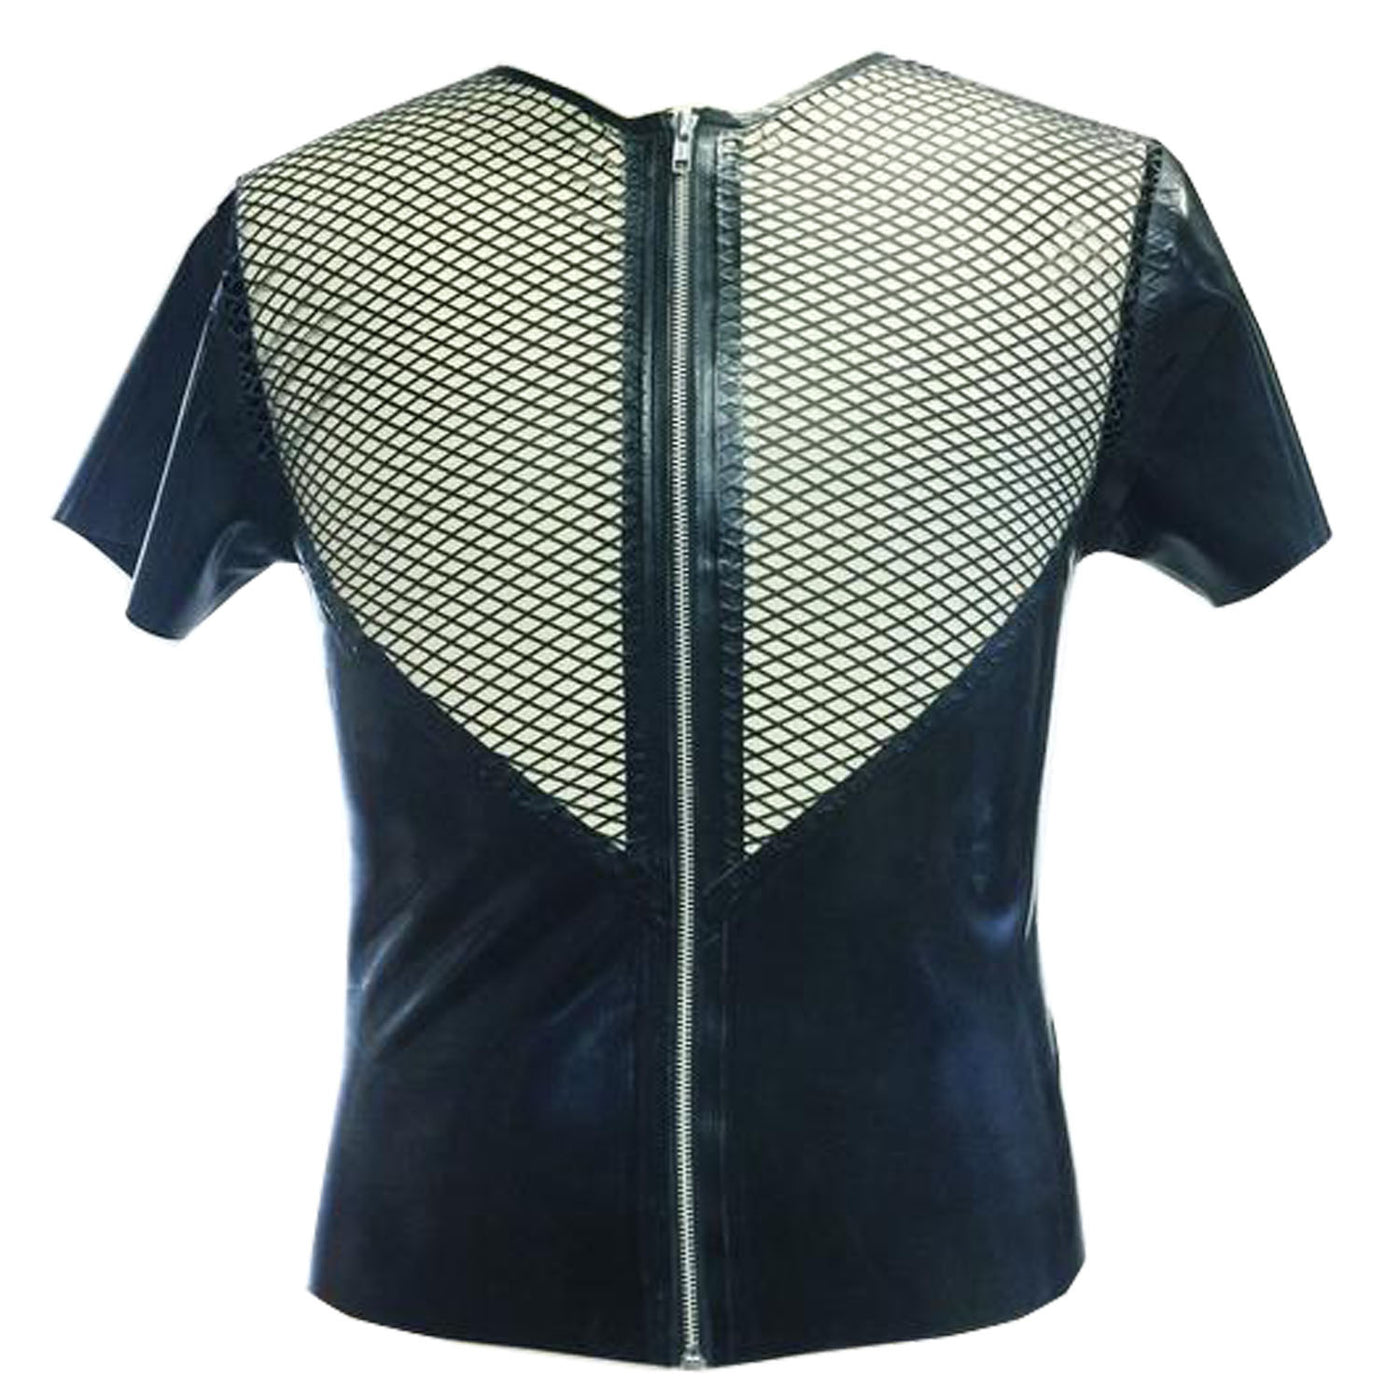 Fishnet Zip Tee - Vex Inc. | Latex Clothing